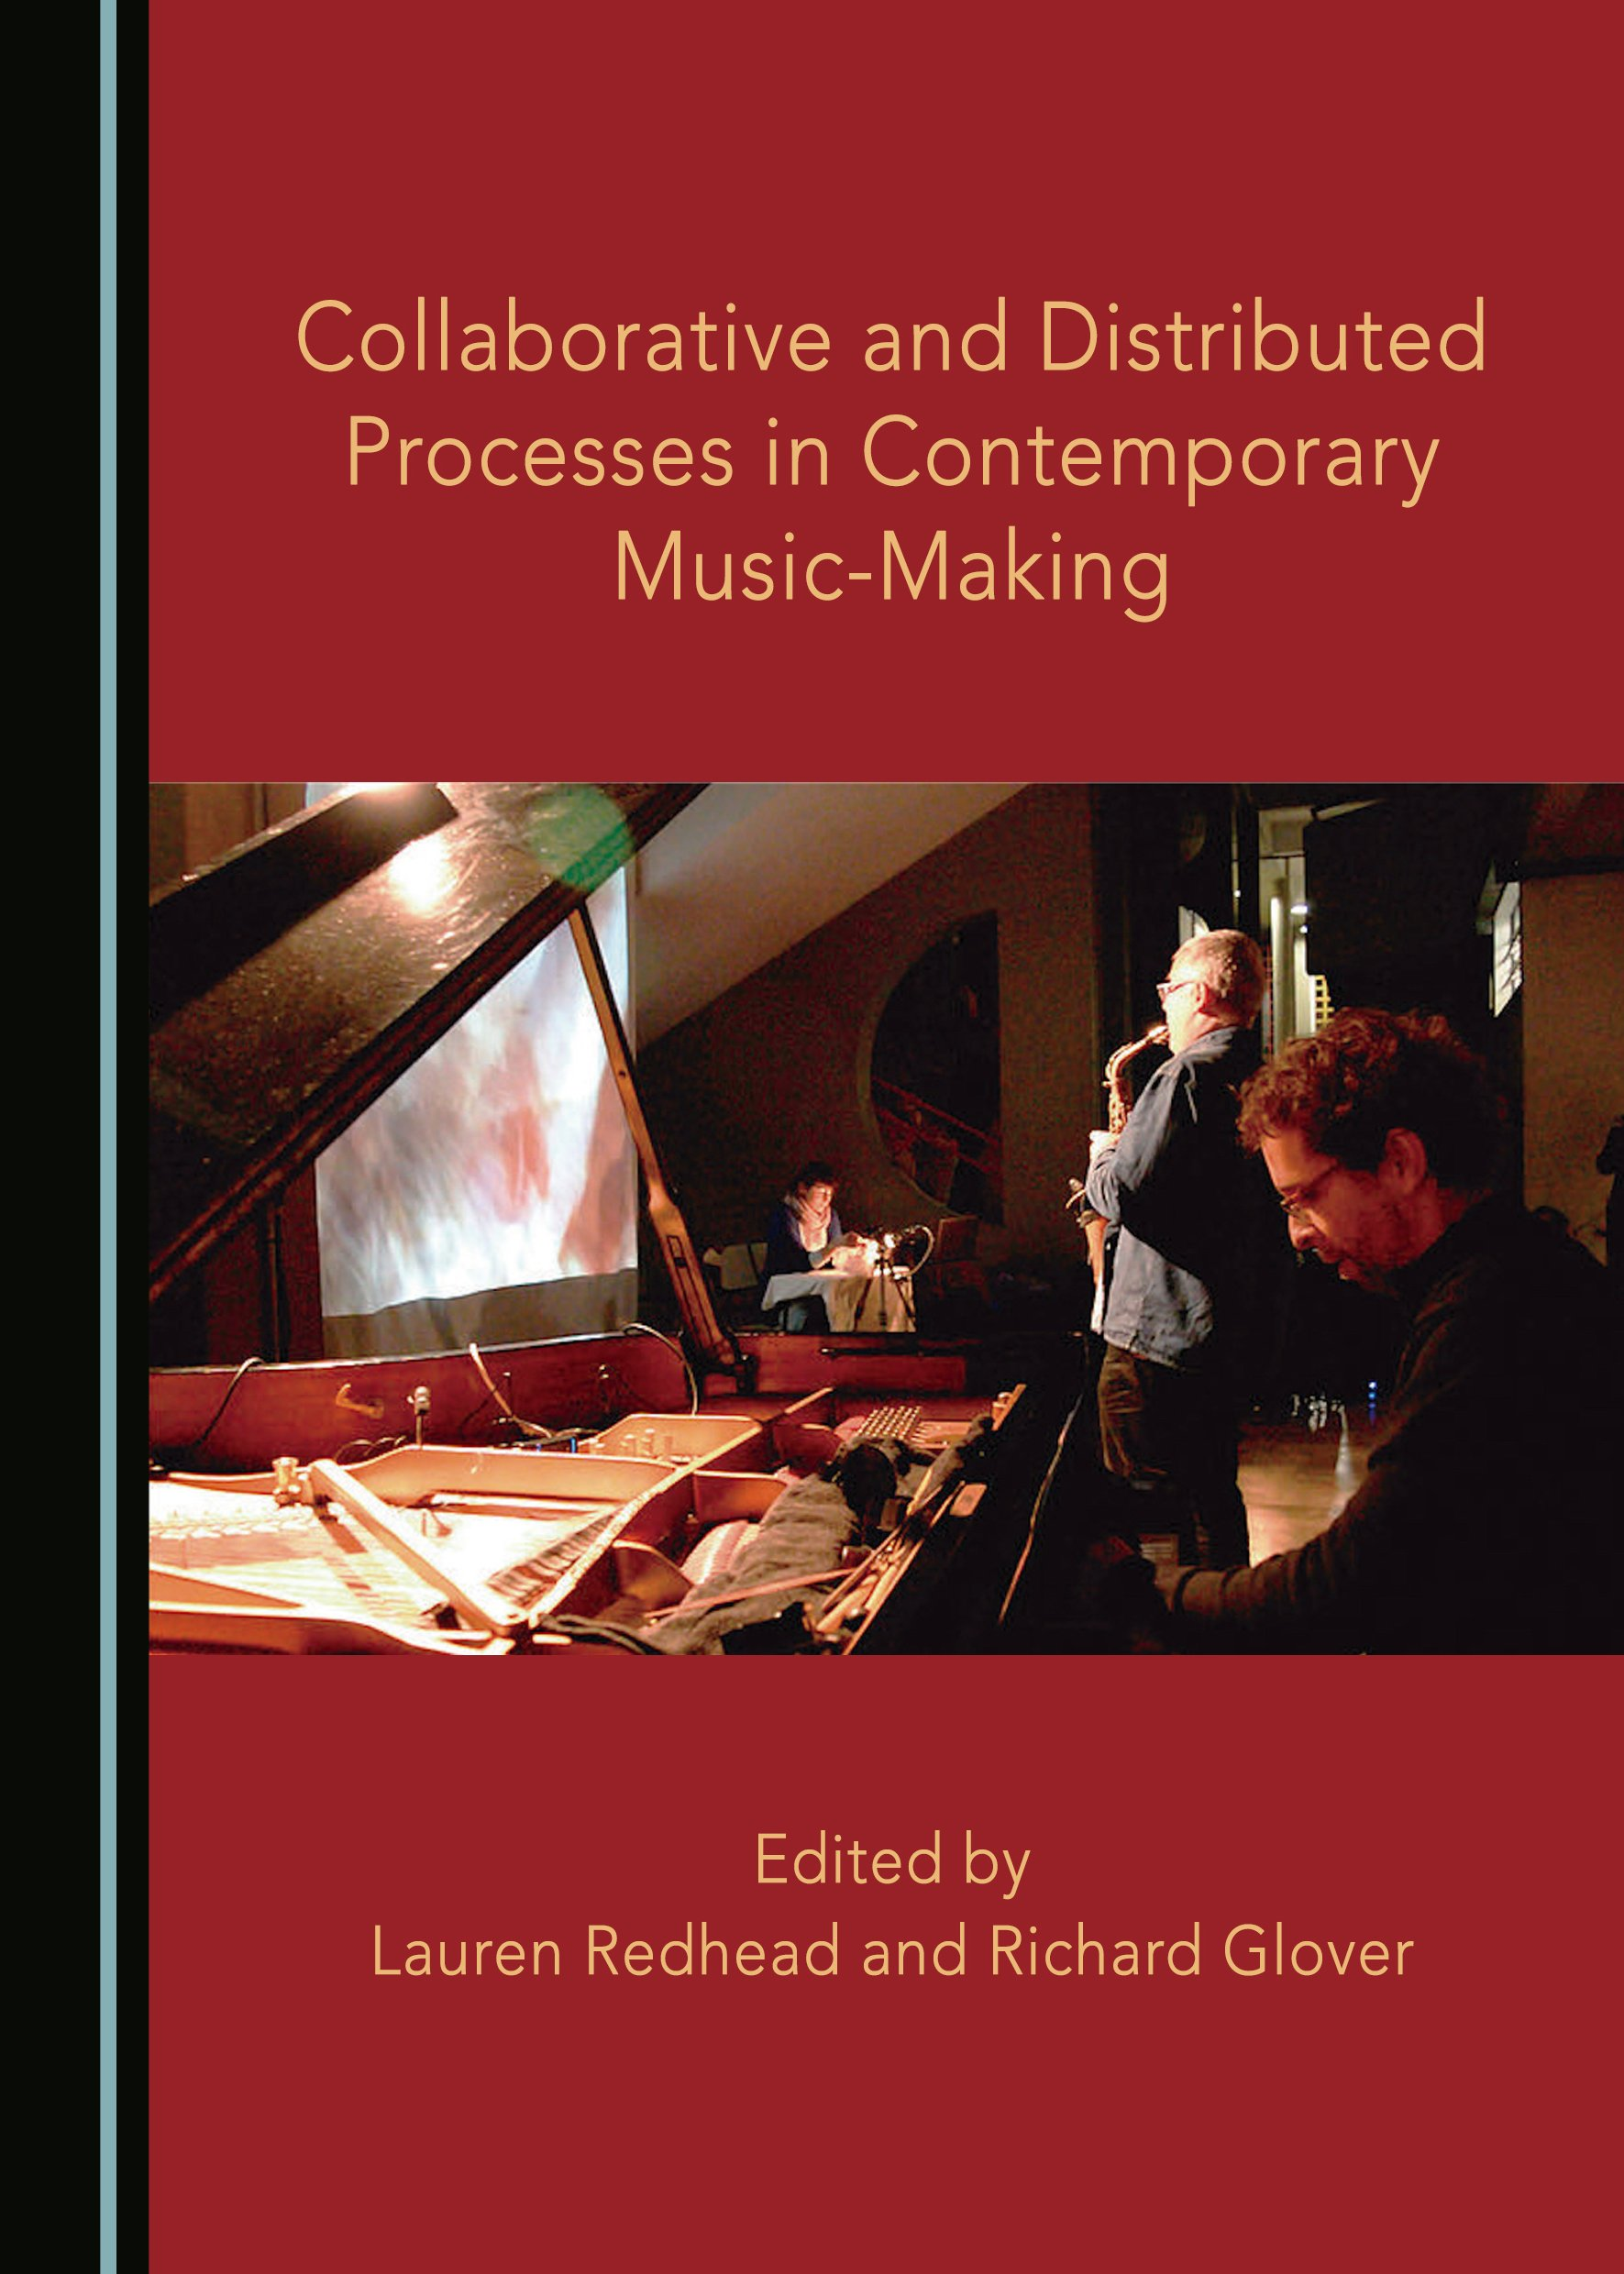 Collaborative and Distributed Processes in Contemporary Music-Making